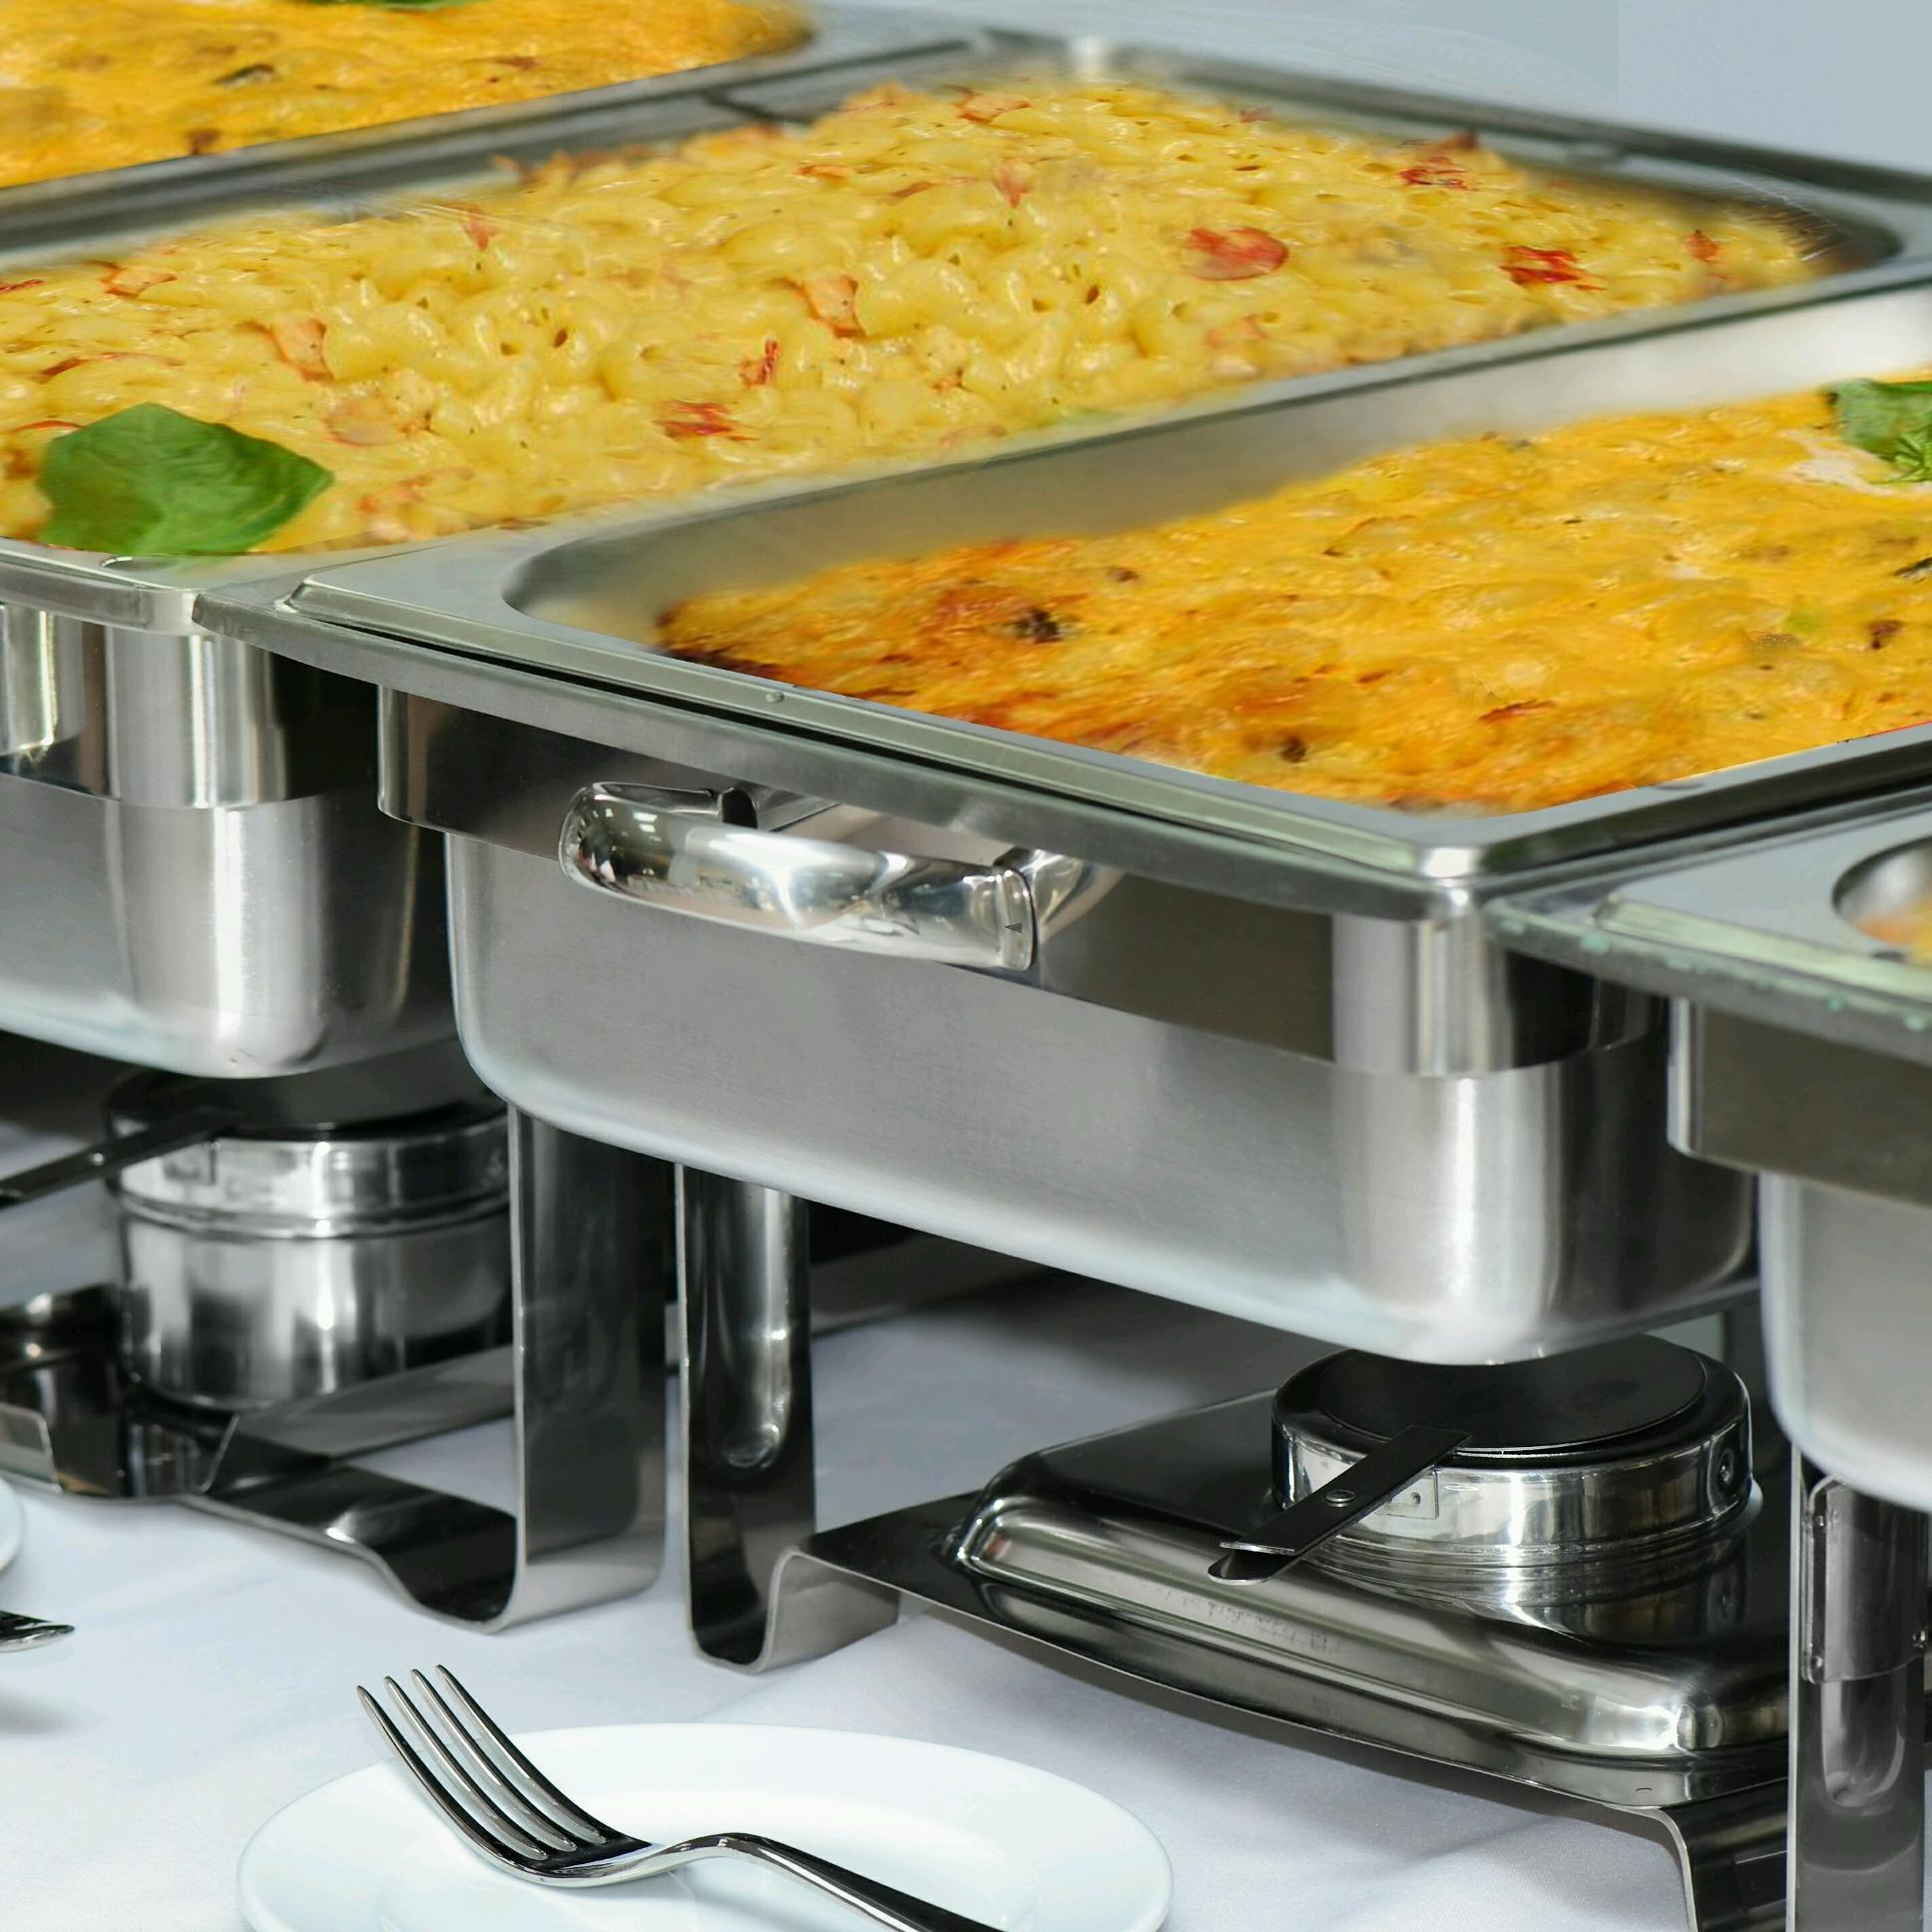 Mac-Cheese-Catering-1